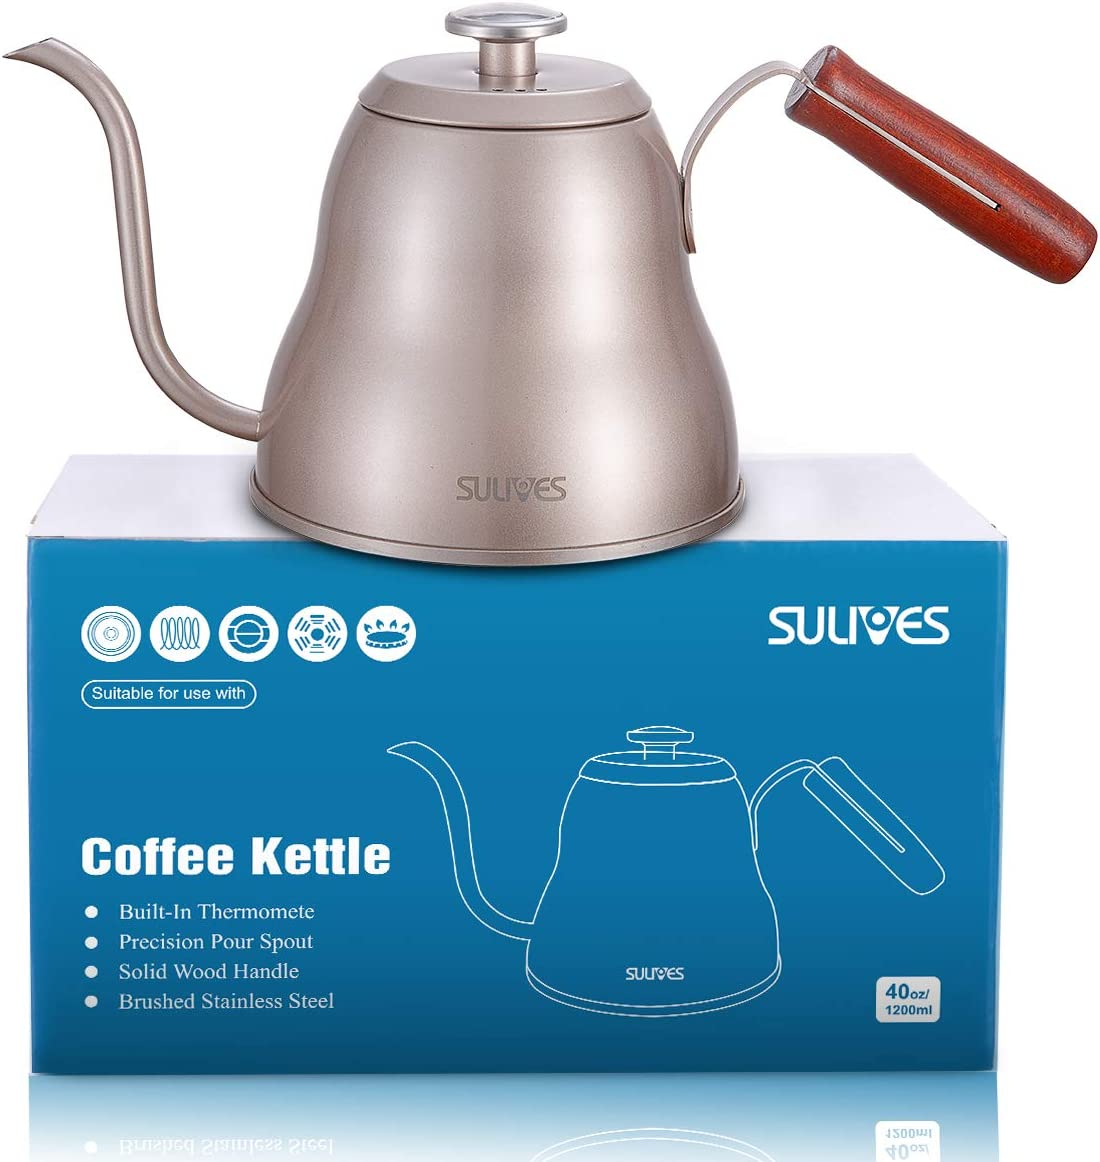 SULIVES 1.2L 40oz Stainless Steel with Built-In Thermometer Pour Over Coffee Kettle, Gold